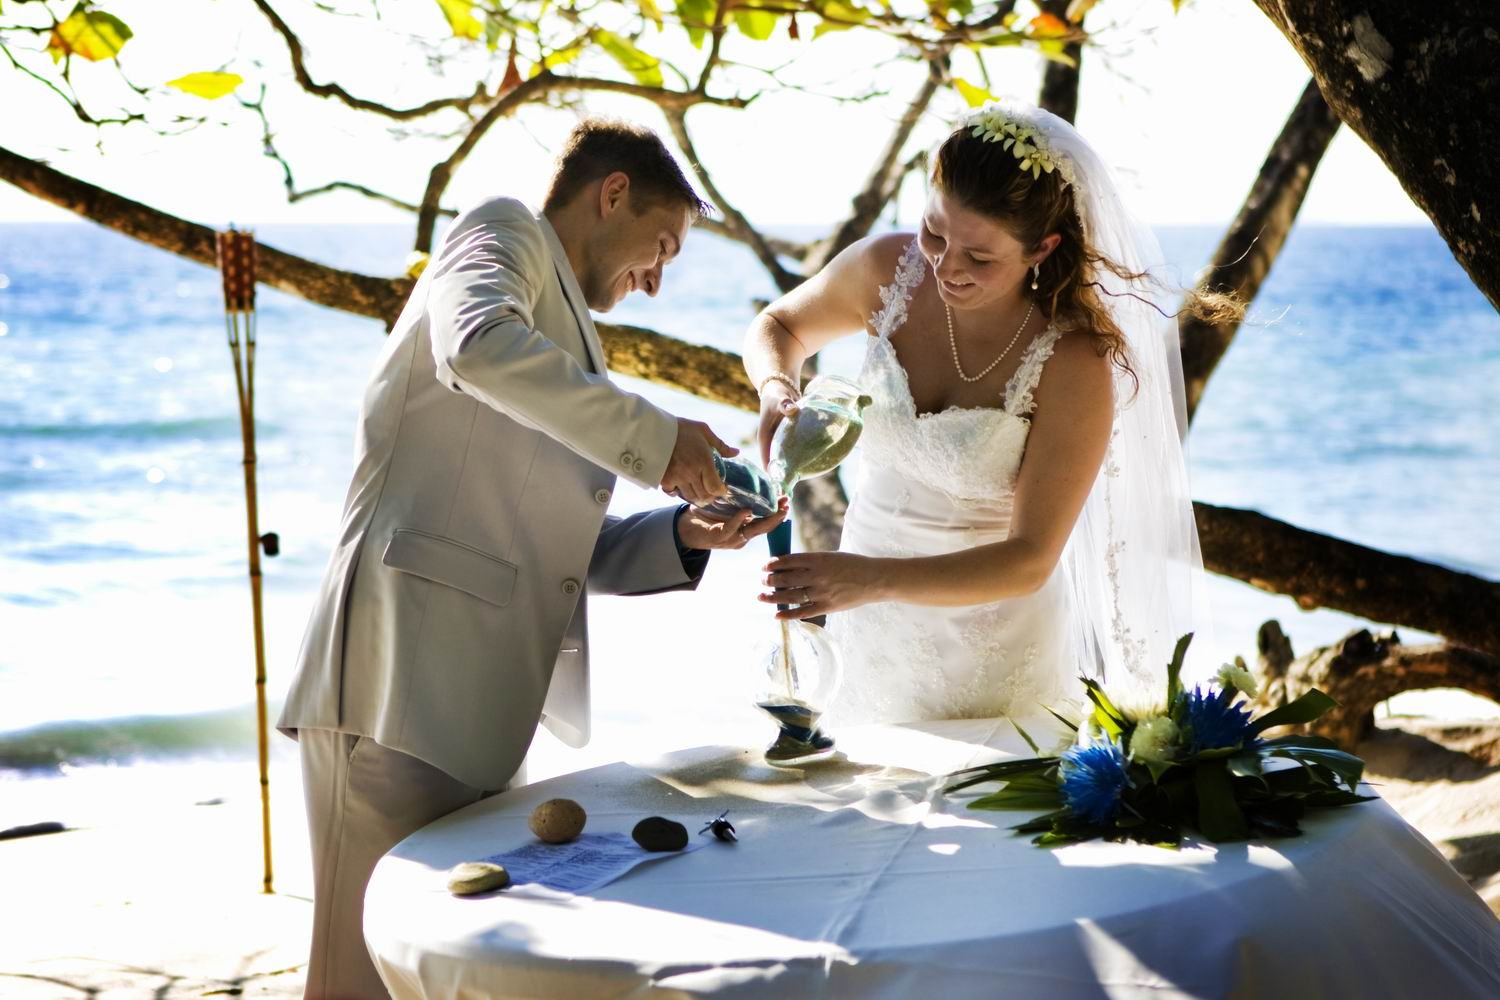 Bride and groom pour sand into marriage bottle at beach wedding